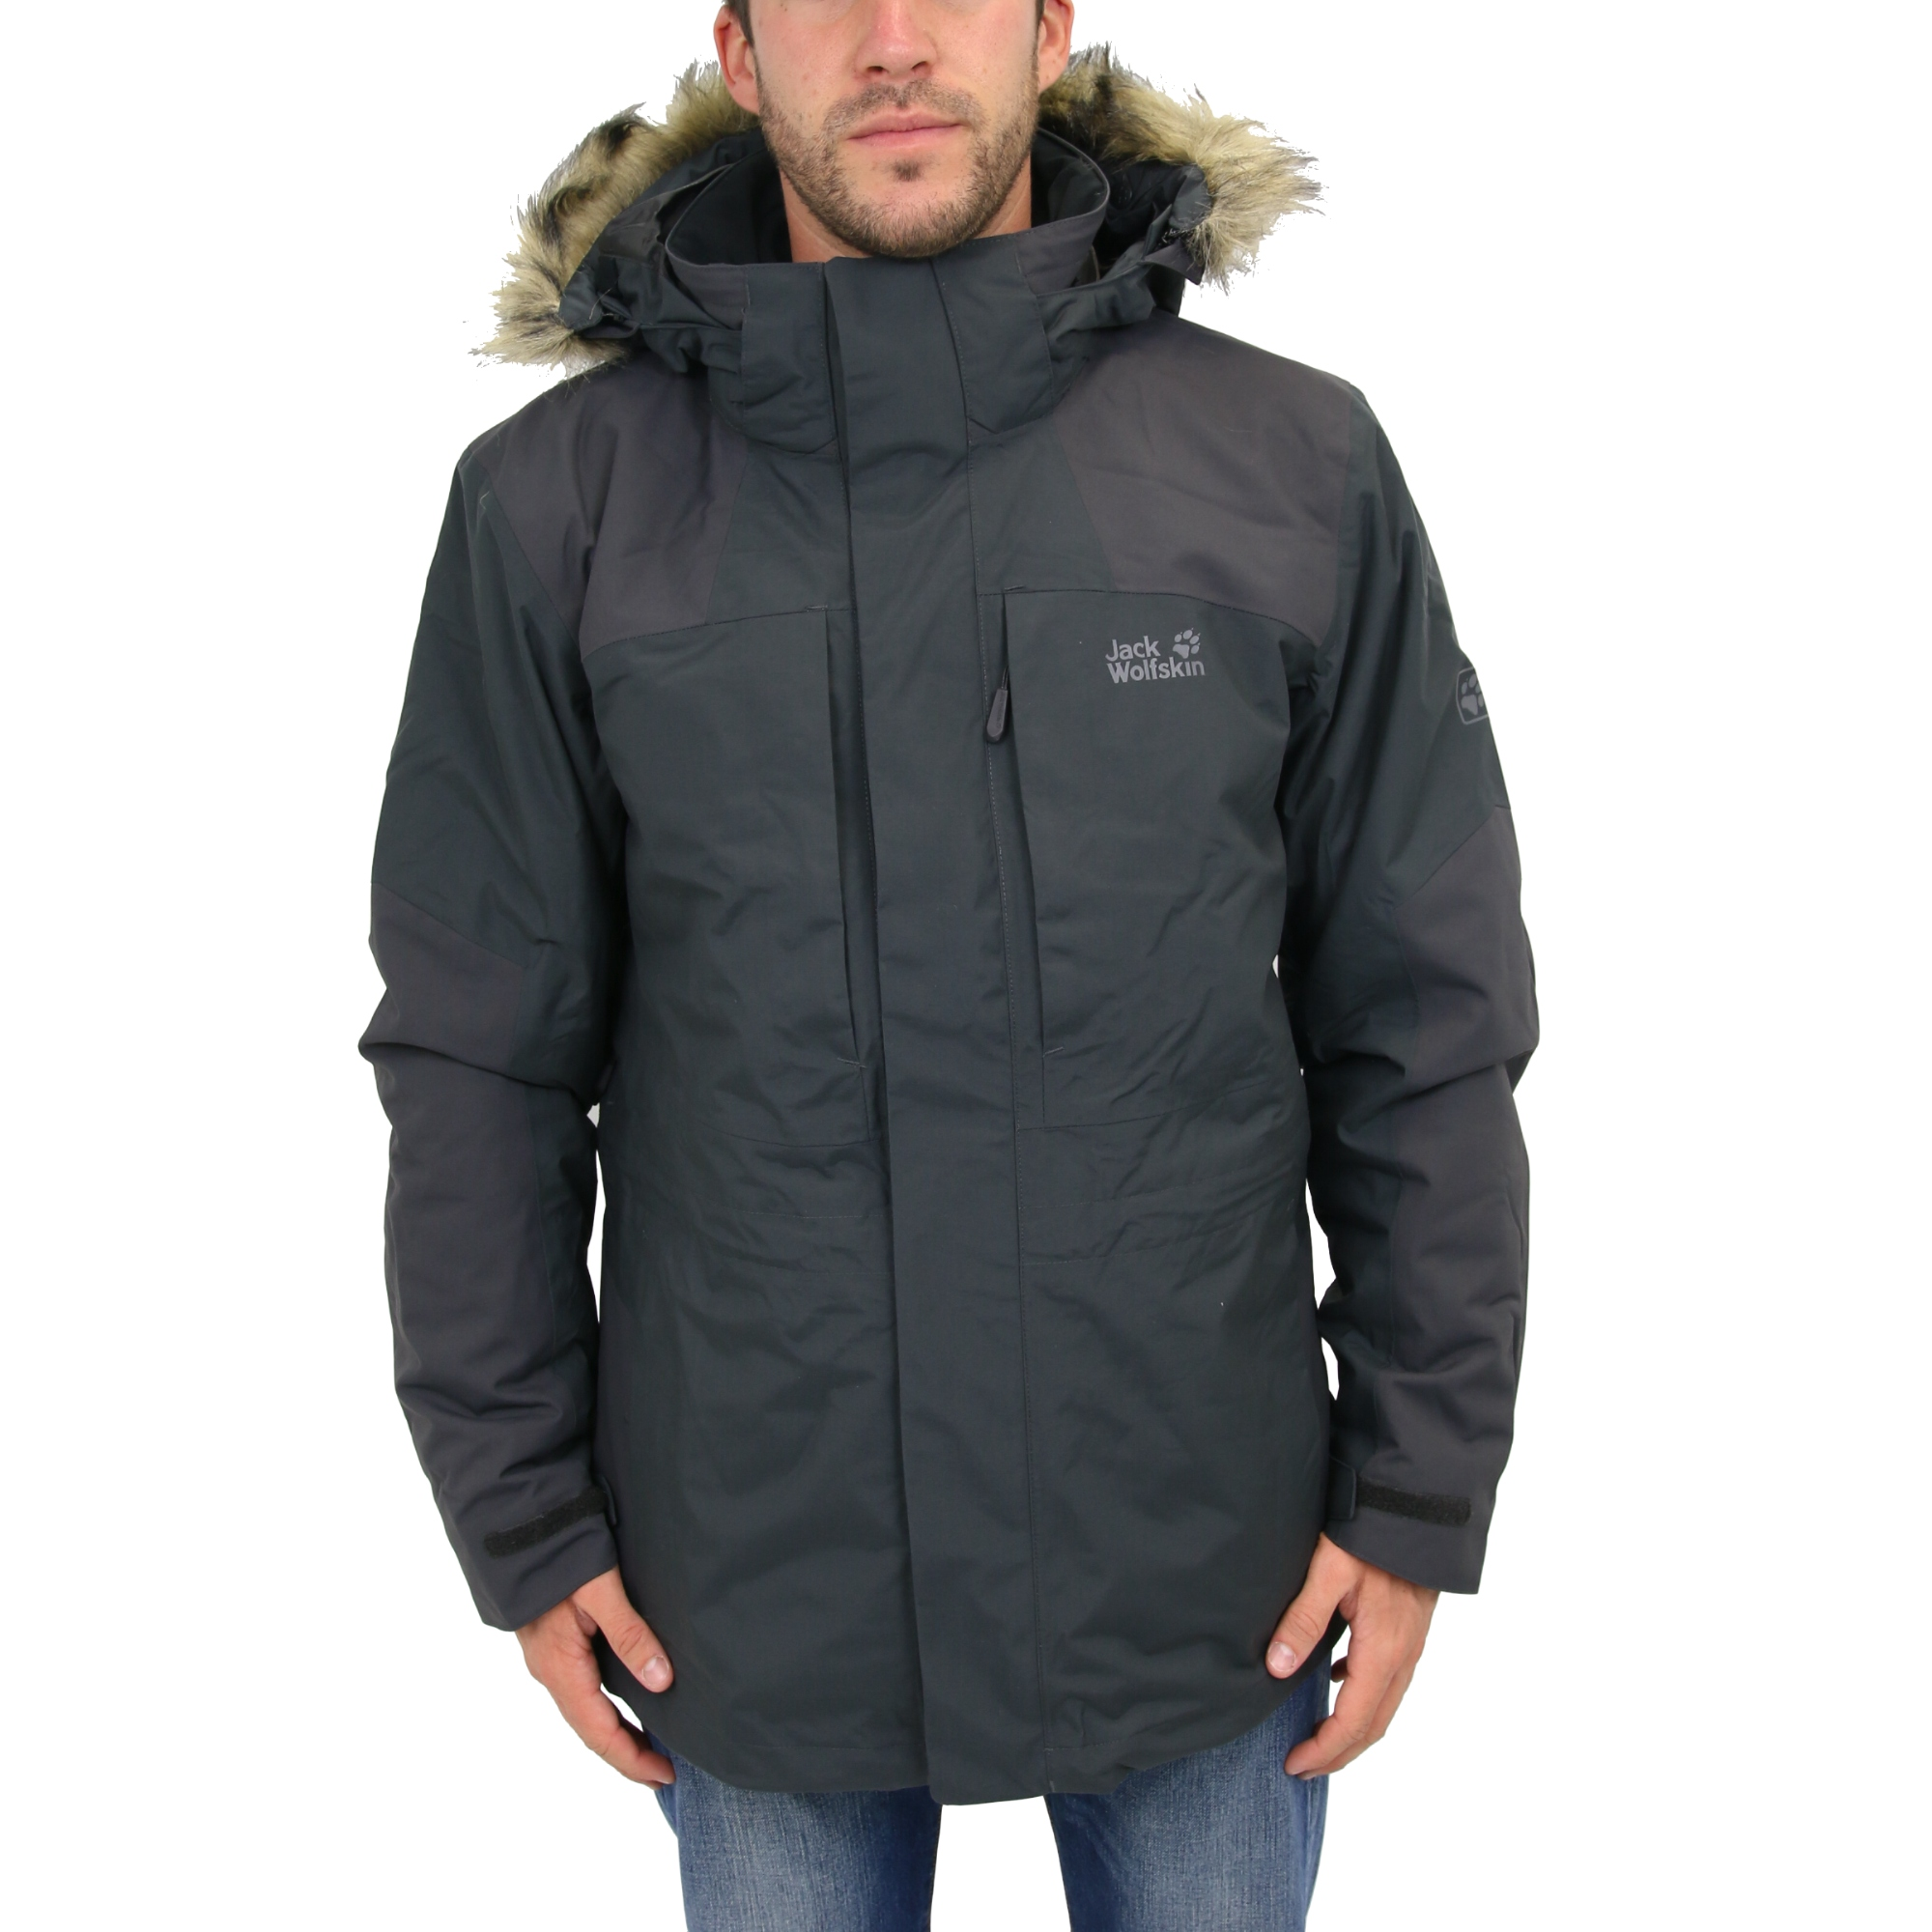 jack wolfskin thorvald jacket jacke winterjacke. Black Bedroom Furniture Sets. Home Design Ideas